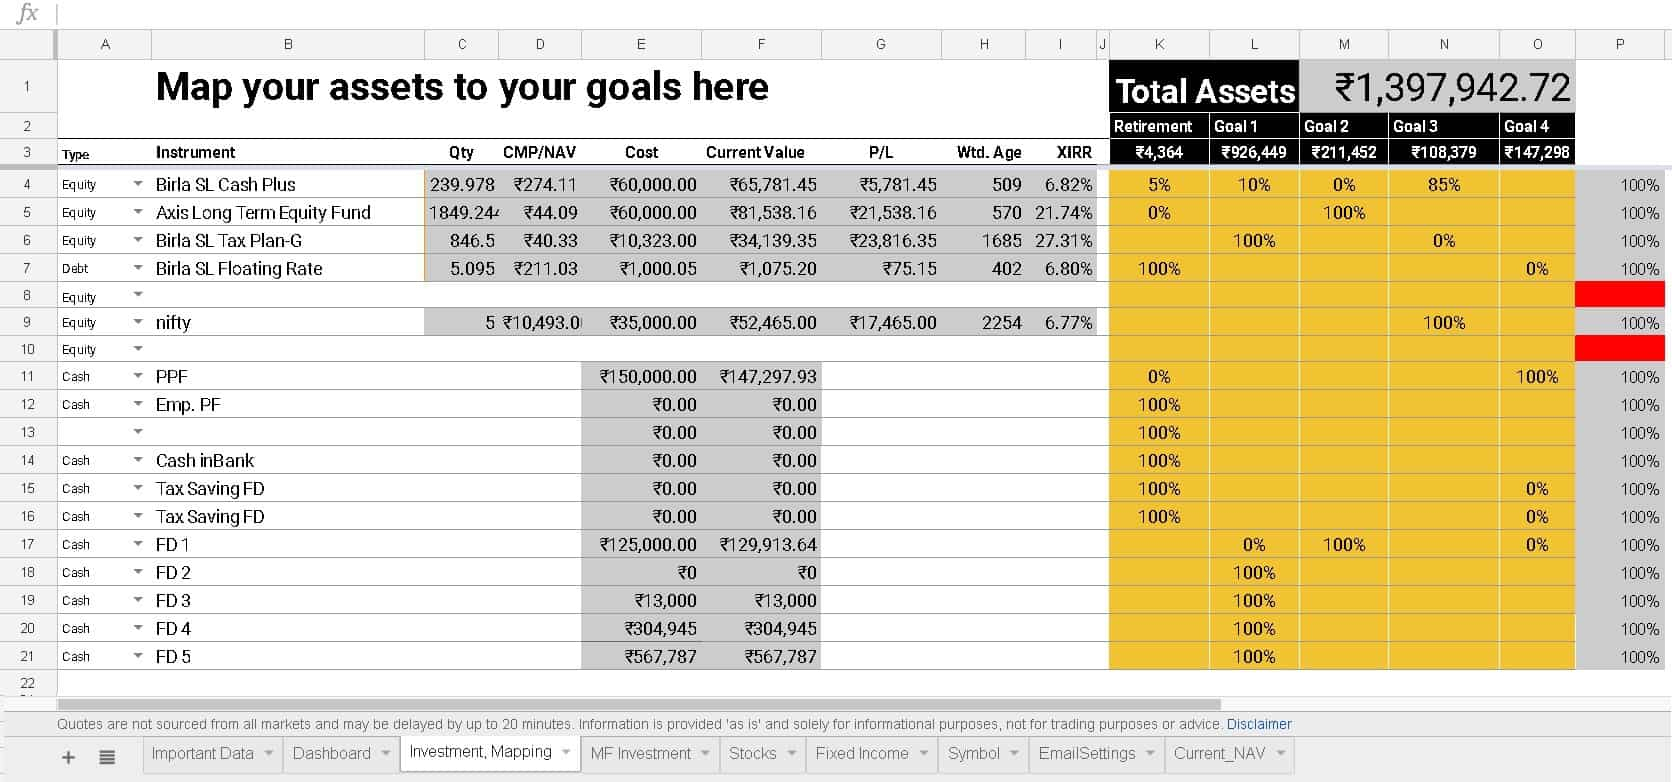 Dividend Spreadsheet Templates In Google Spreadsheet Portfoliocker For Stocks And Mutual Funds Sheet Dividend Spreadsheet Templates Printable Spreadshee Printable Spreadshee dividend spreadsheet templates